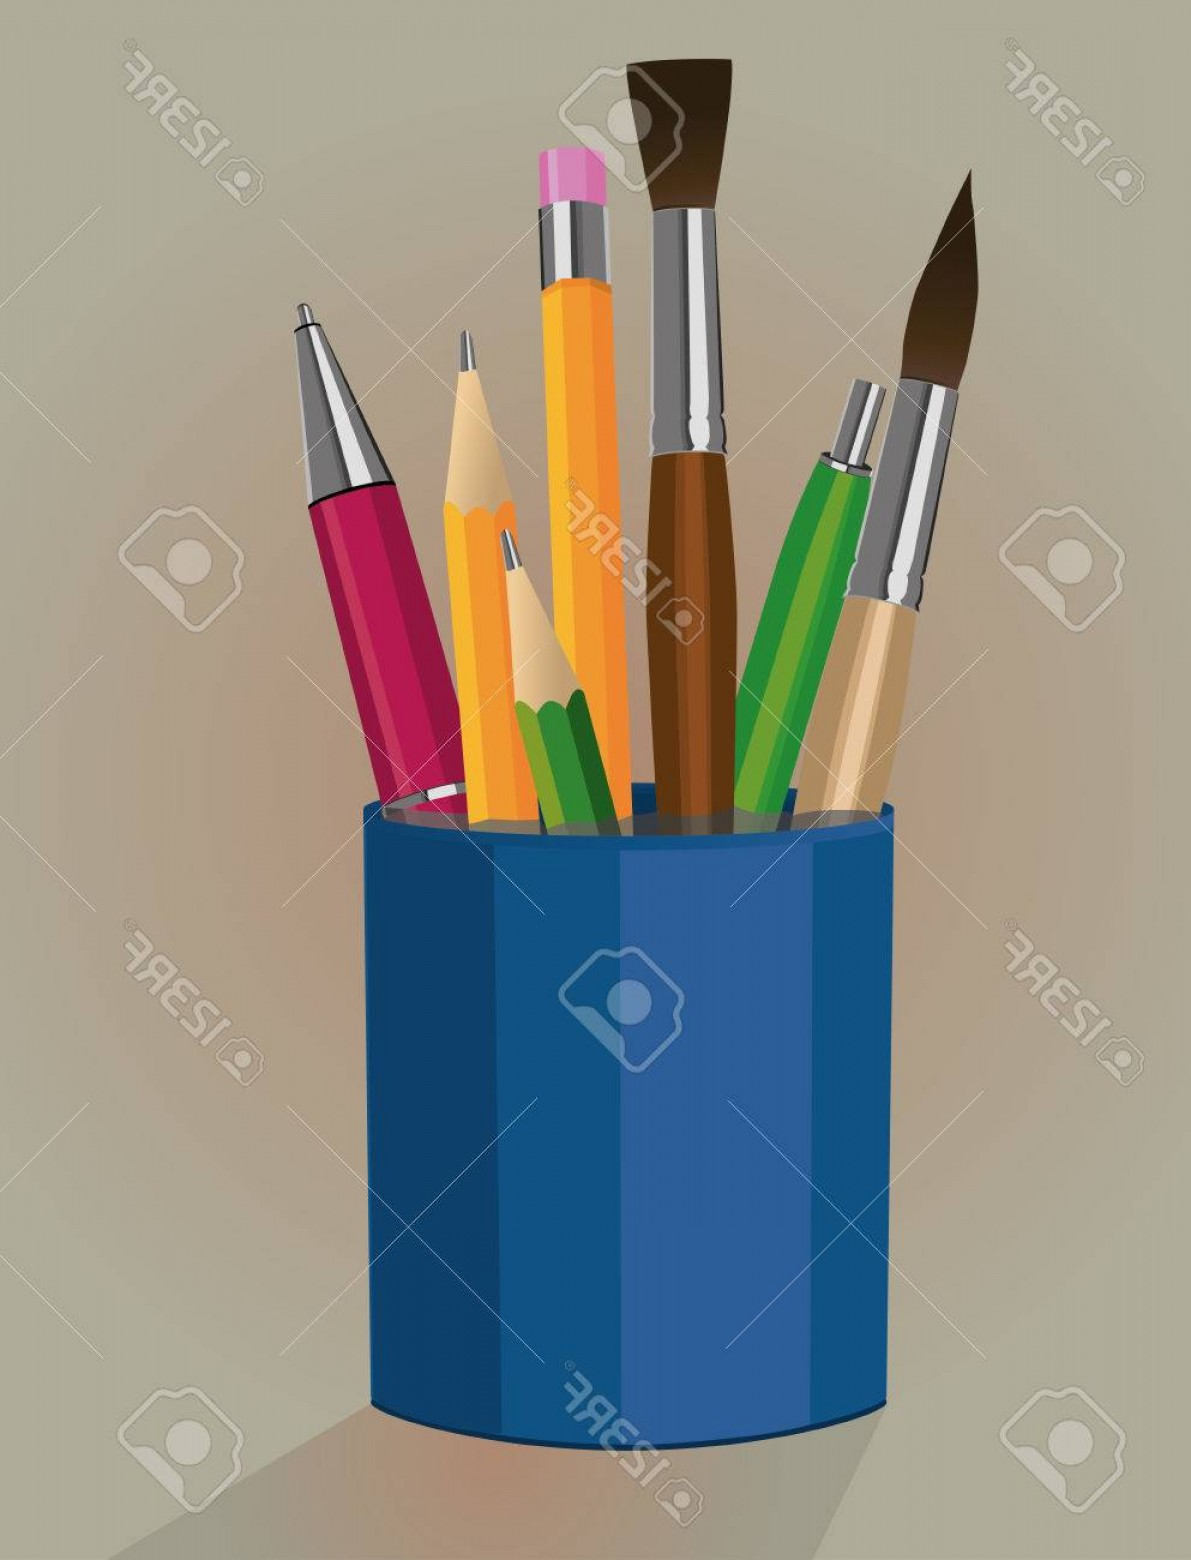 Vector Pencil Holder: Photostock Vector A Pen Holder With Pencils Pens And Paintbrushes